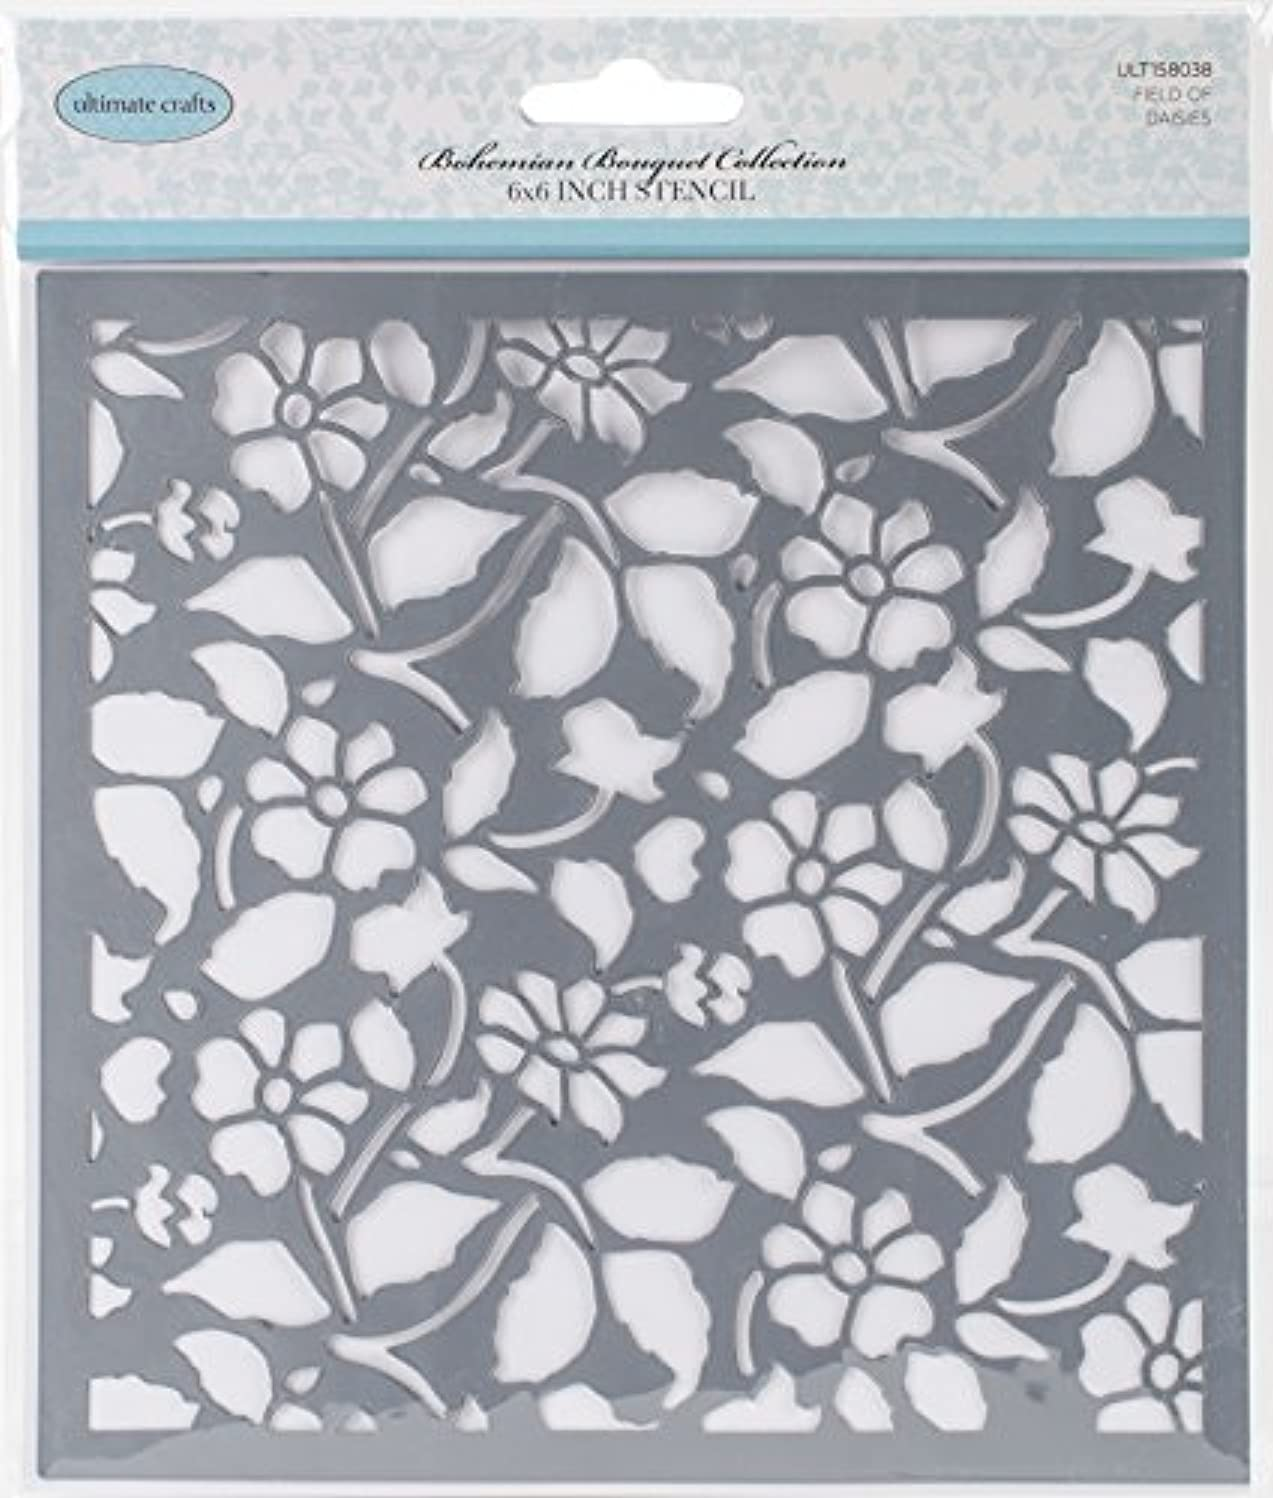 Artdeco Creations Field of Daisies Ultimate Crafts Bohemian Bouquet Stencil 6